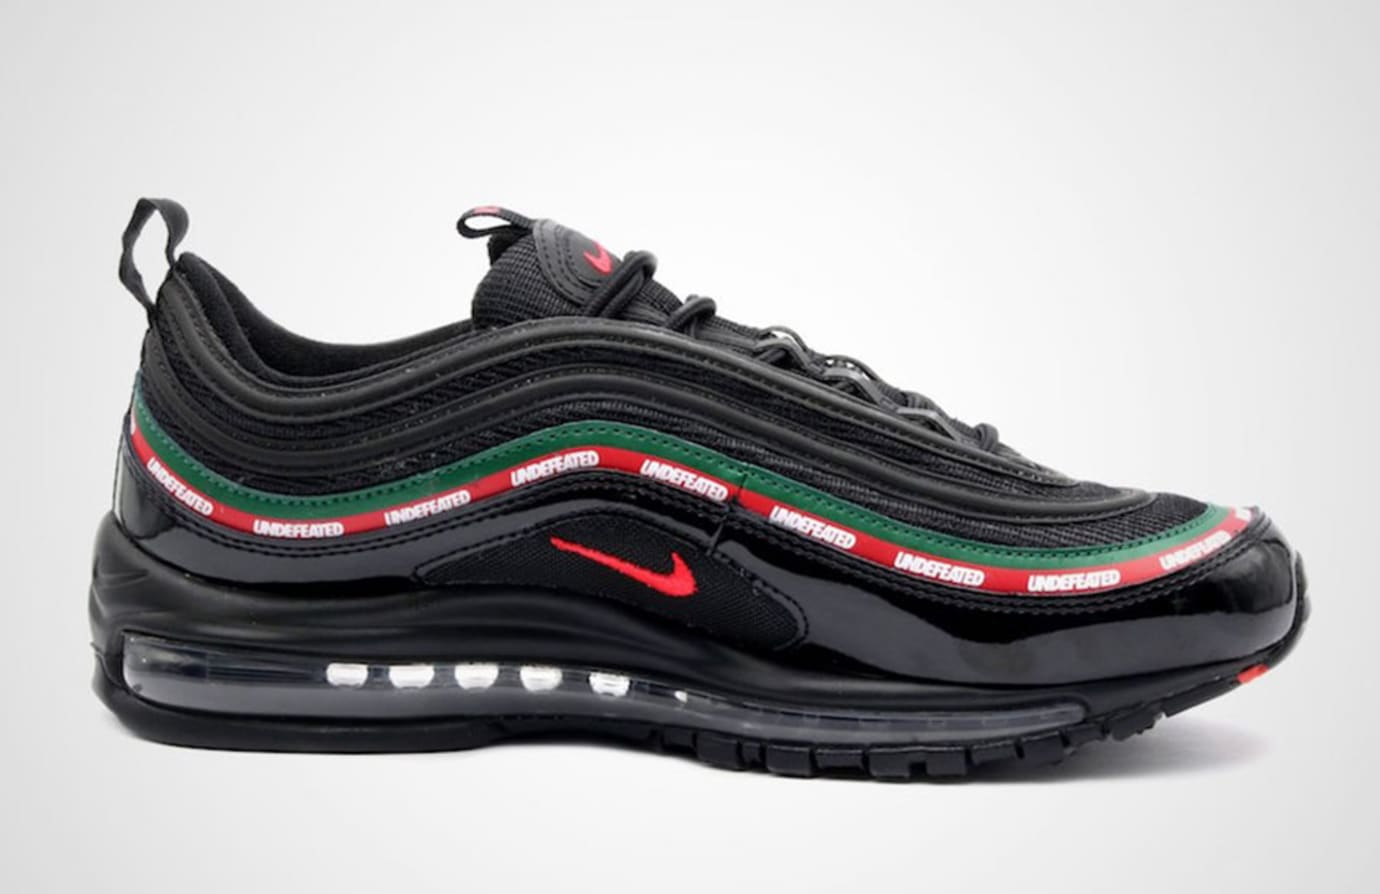 Undefeated Nike Air Max 97 AJ1986-001 Medial